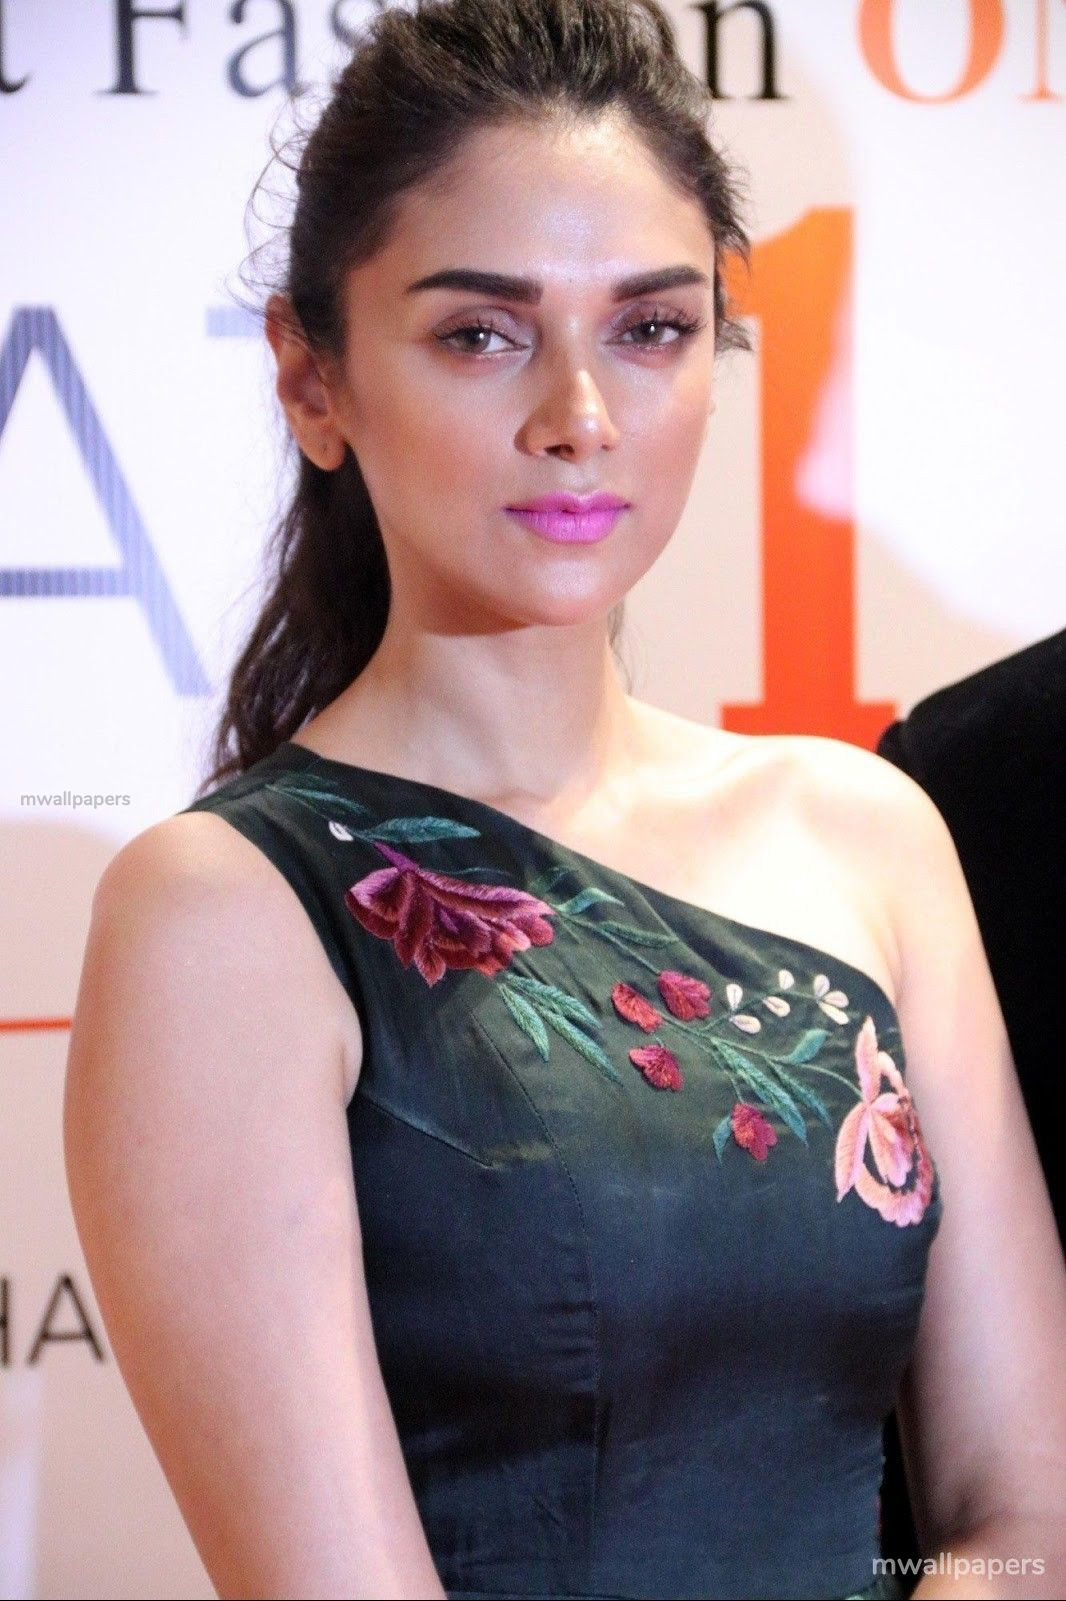 Aditi Rao Hydari Beautiful HD Photoshoot Stills (1080p) (30958) - Aditi Rao Hydari